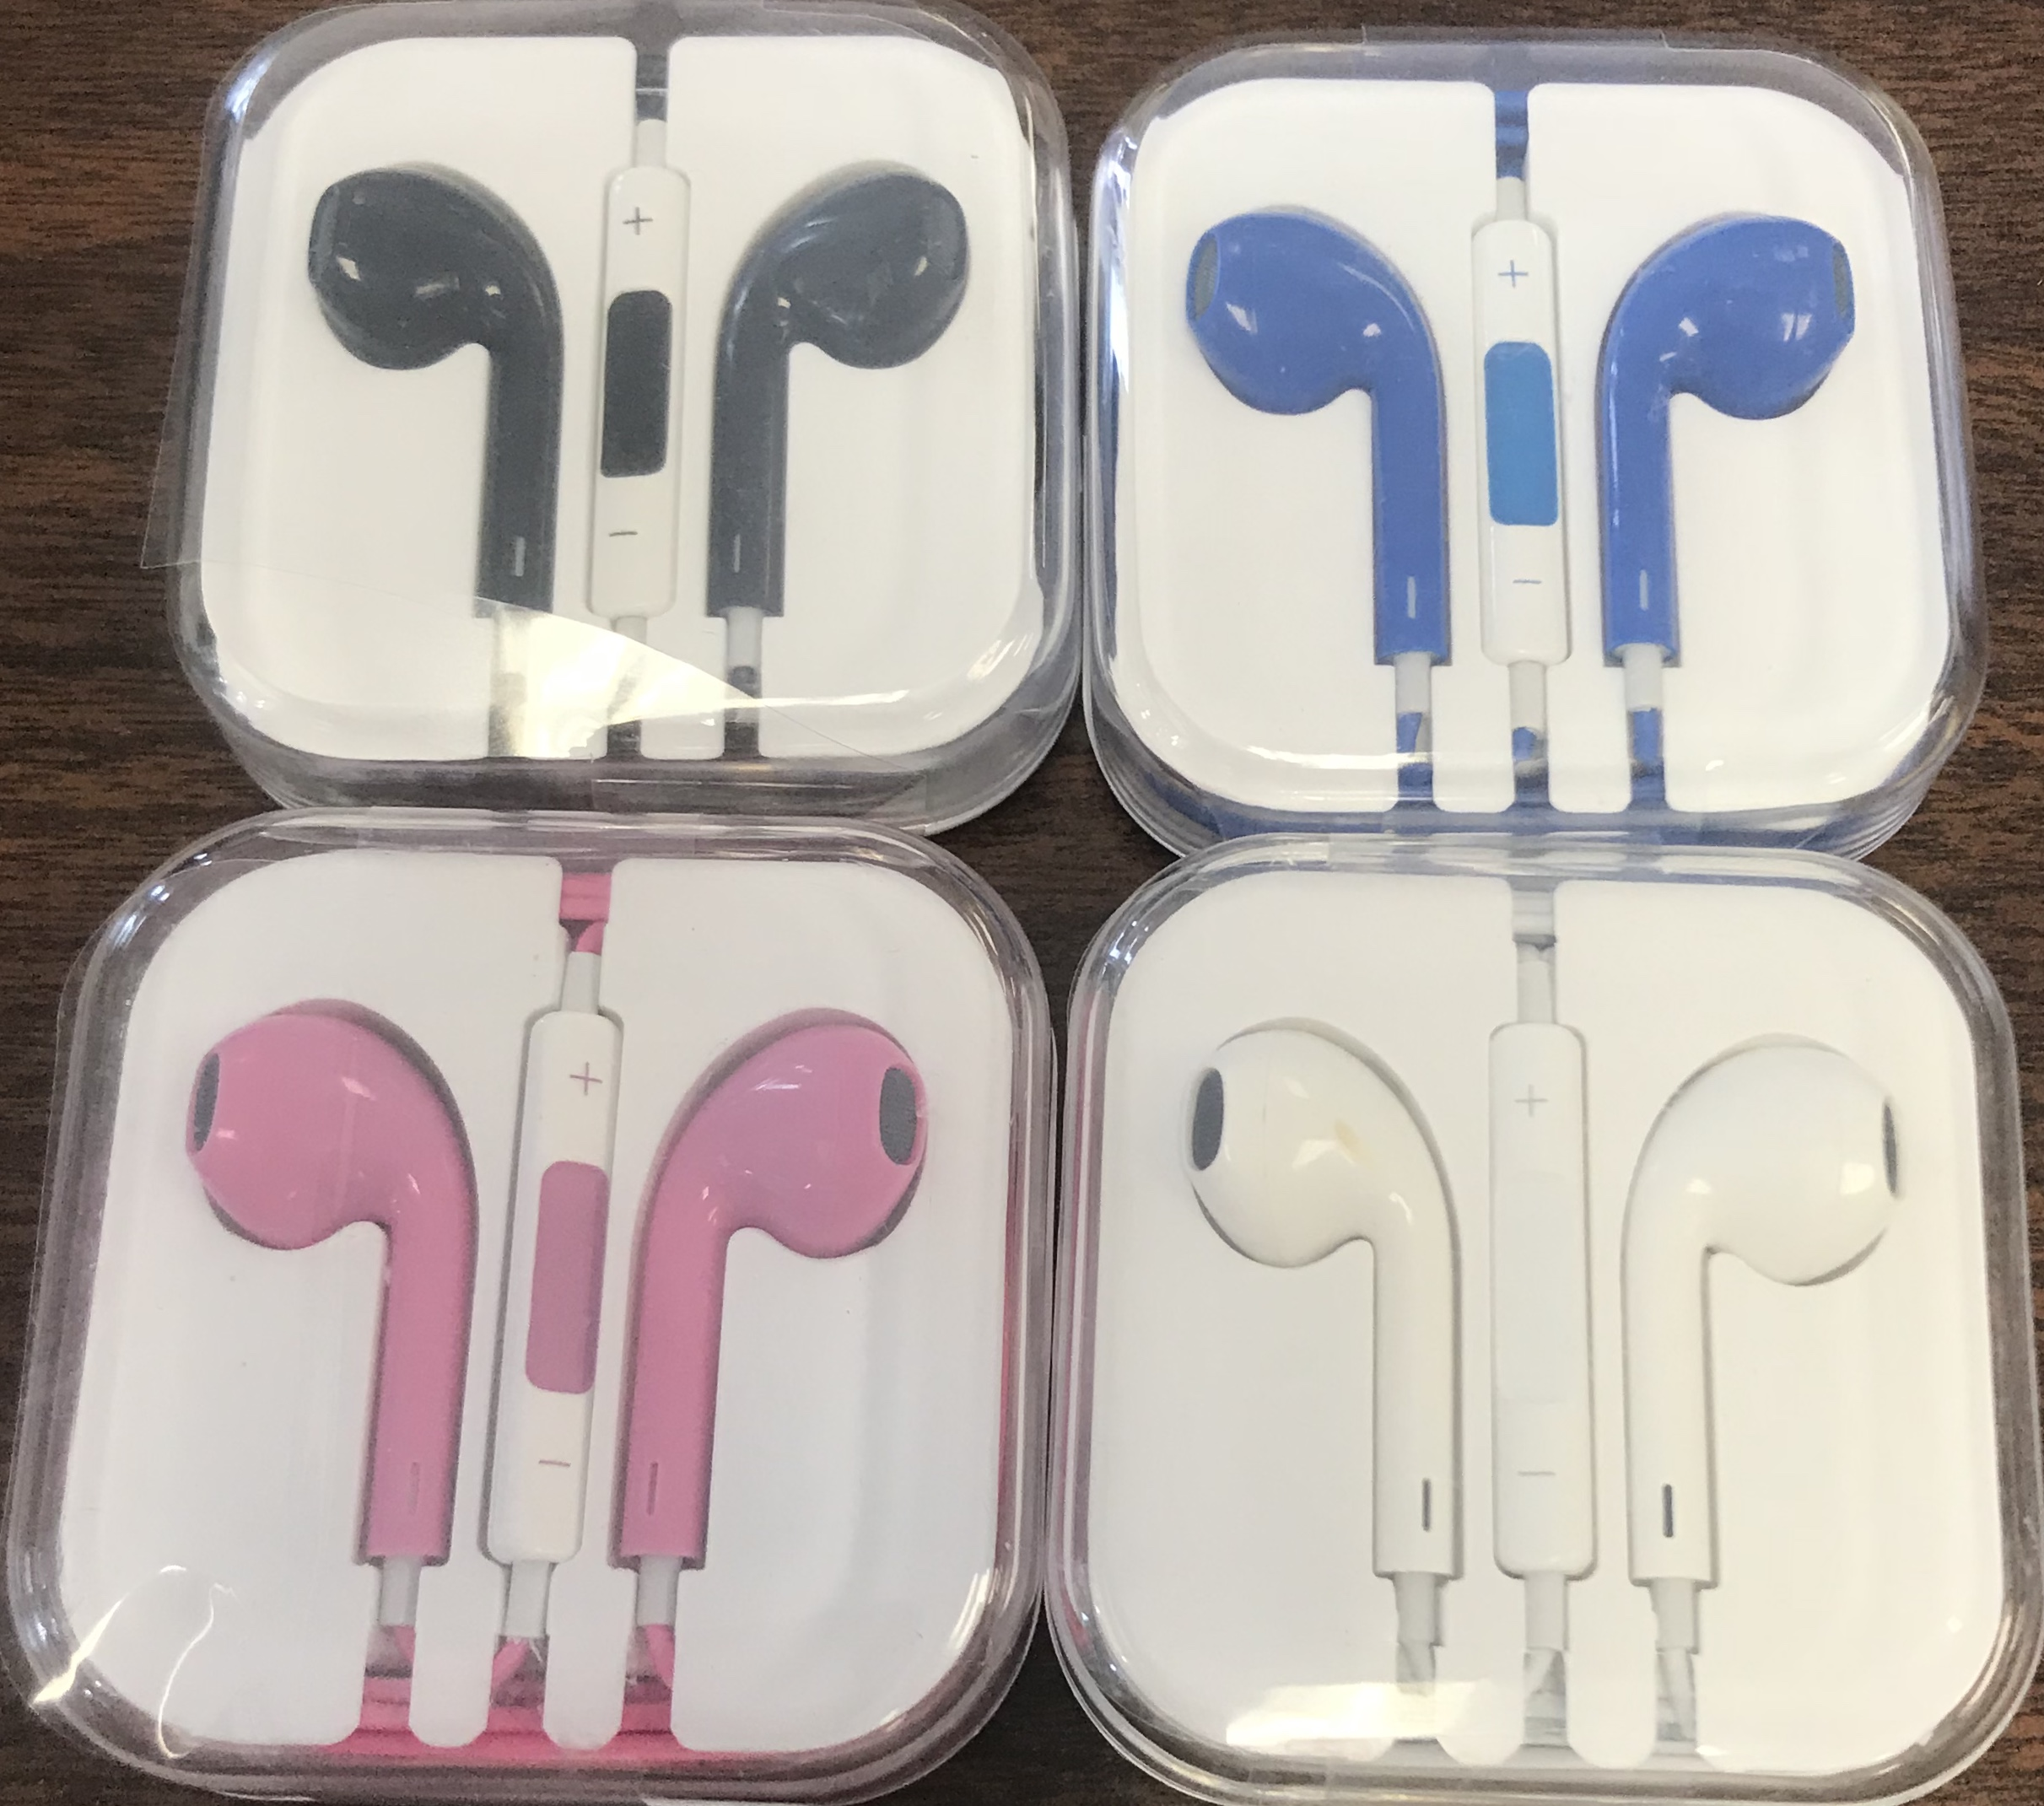 Earpods with Plastic Case